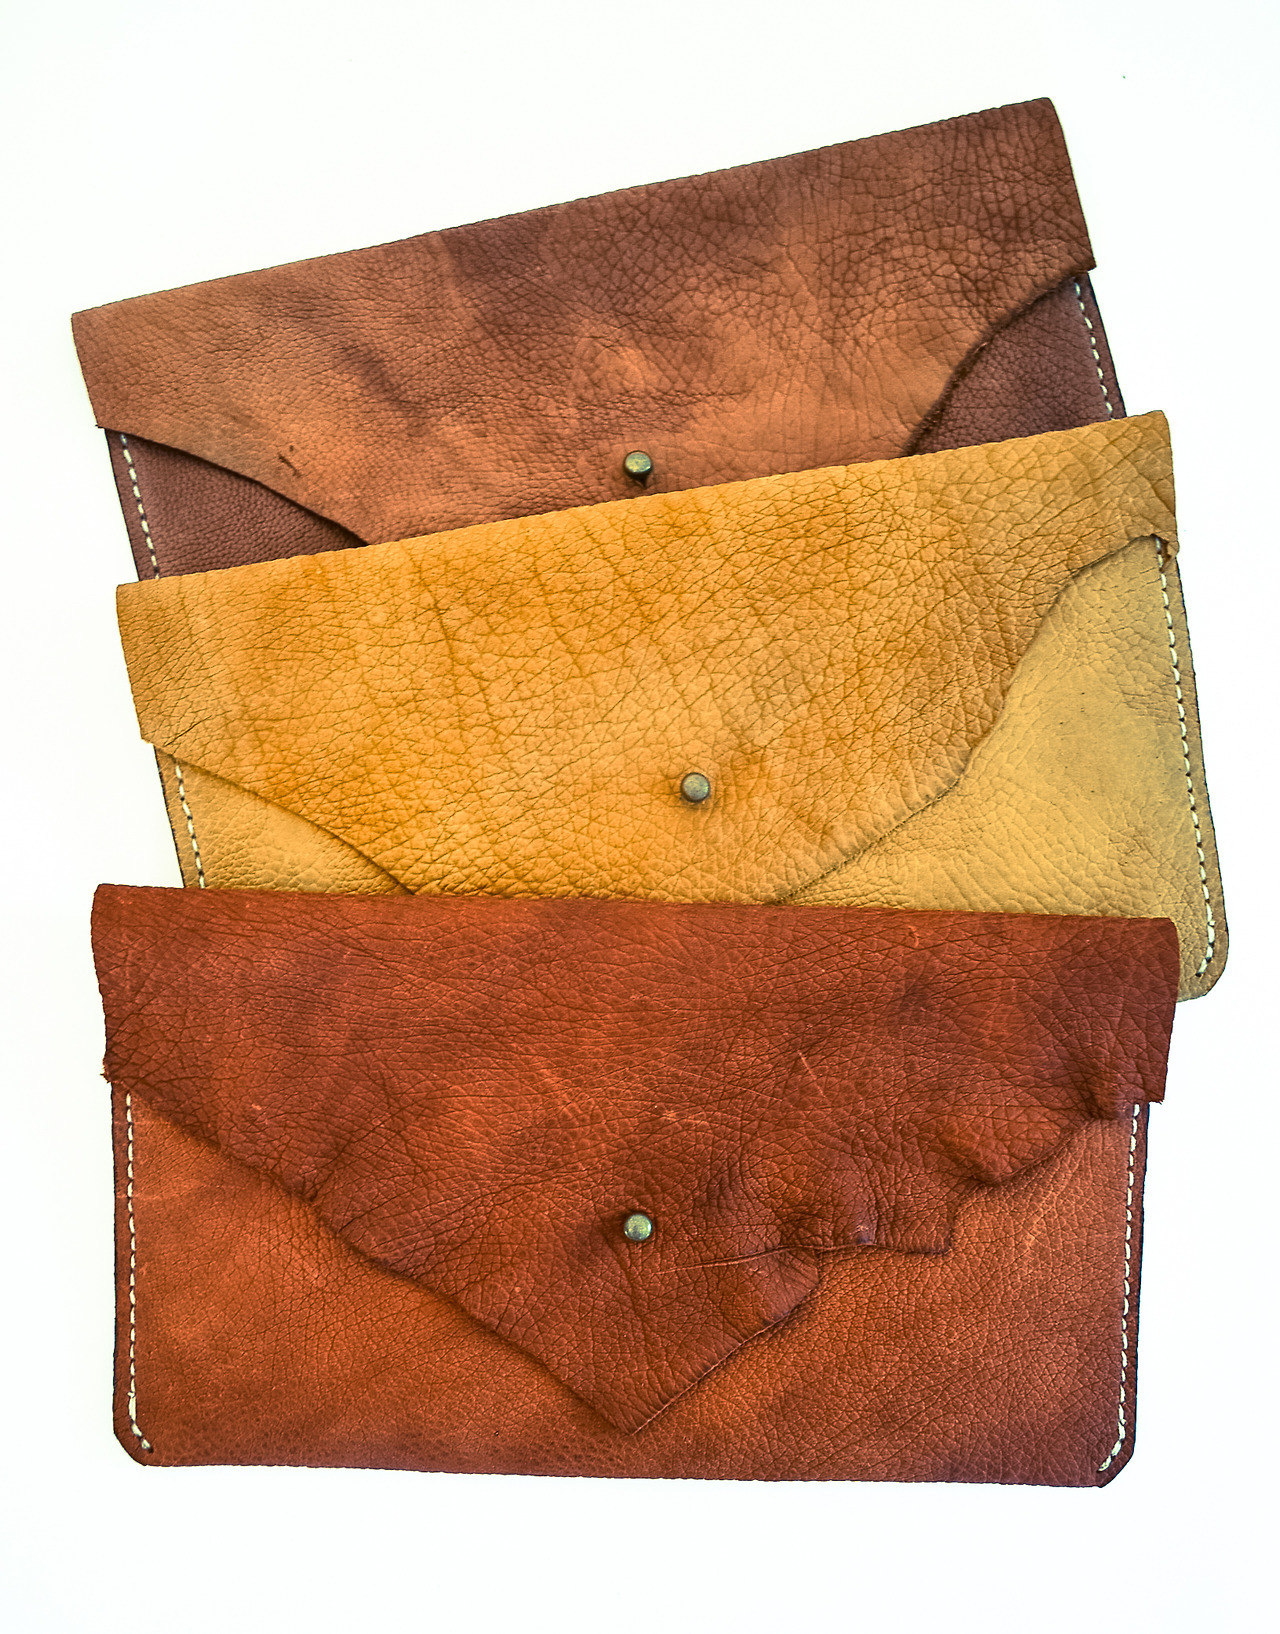 Denim lined, raw edge leather pouches   coming soon    www.faitlaforce.com